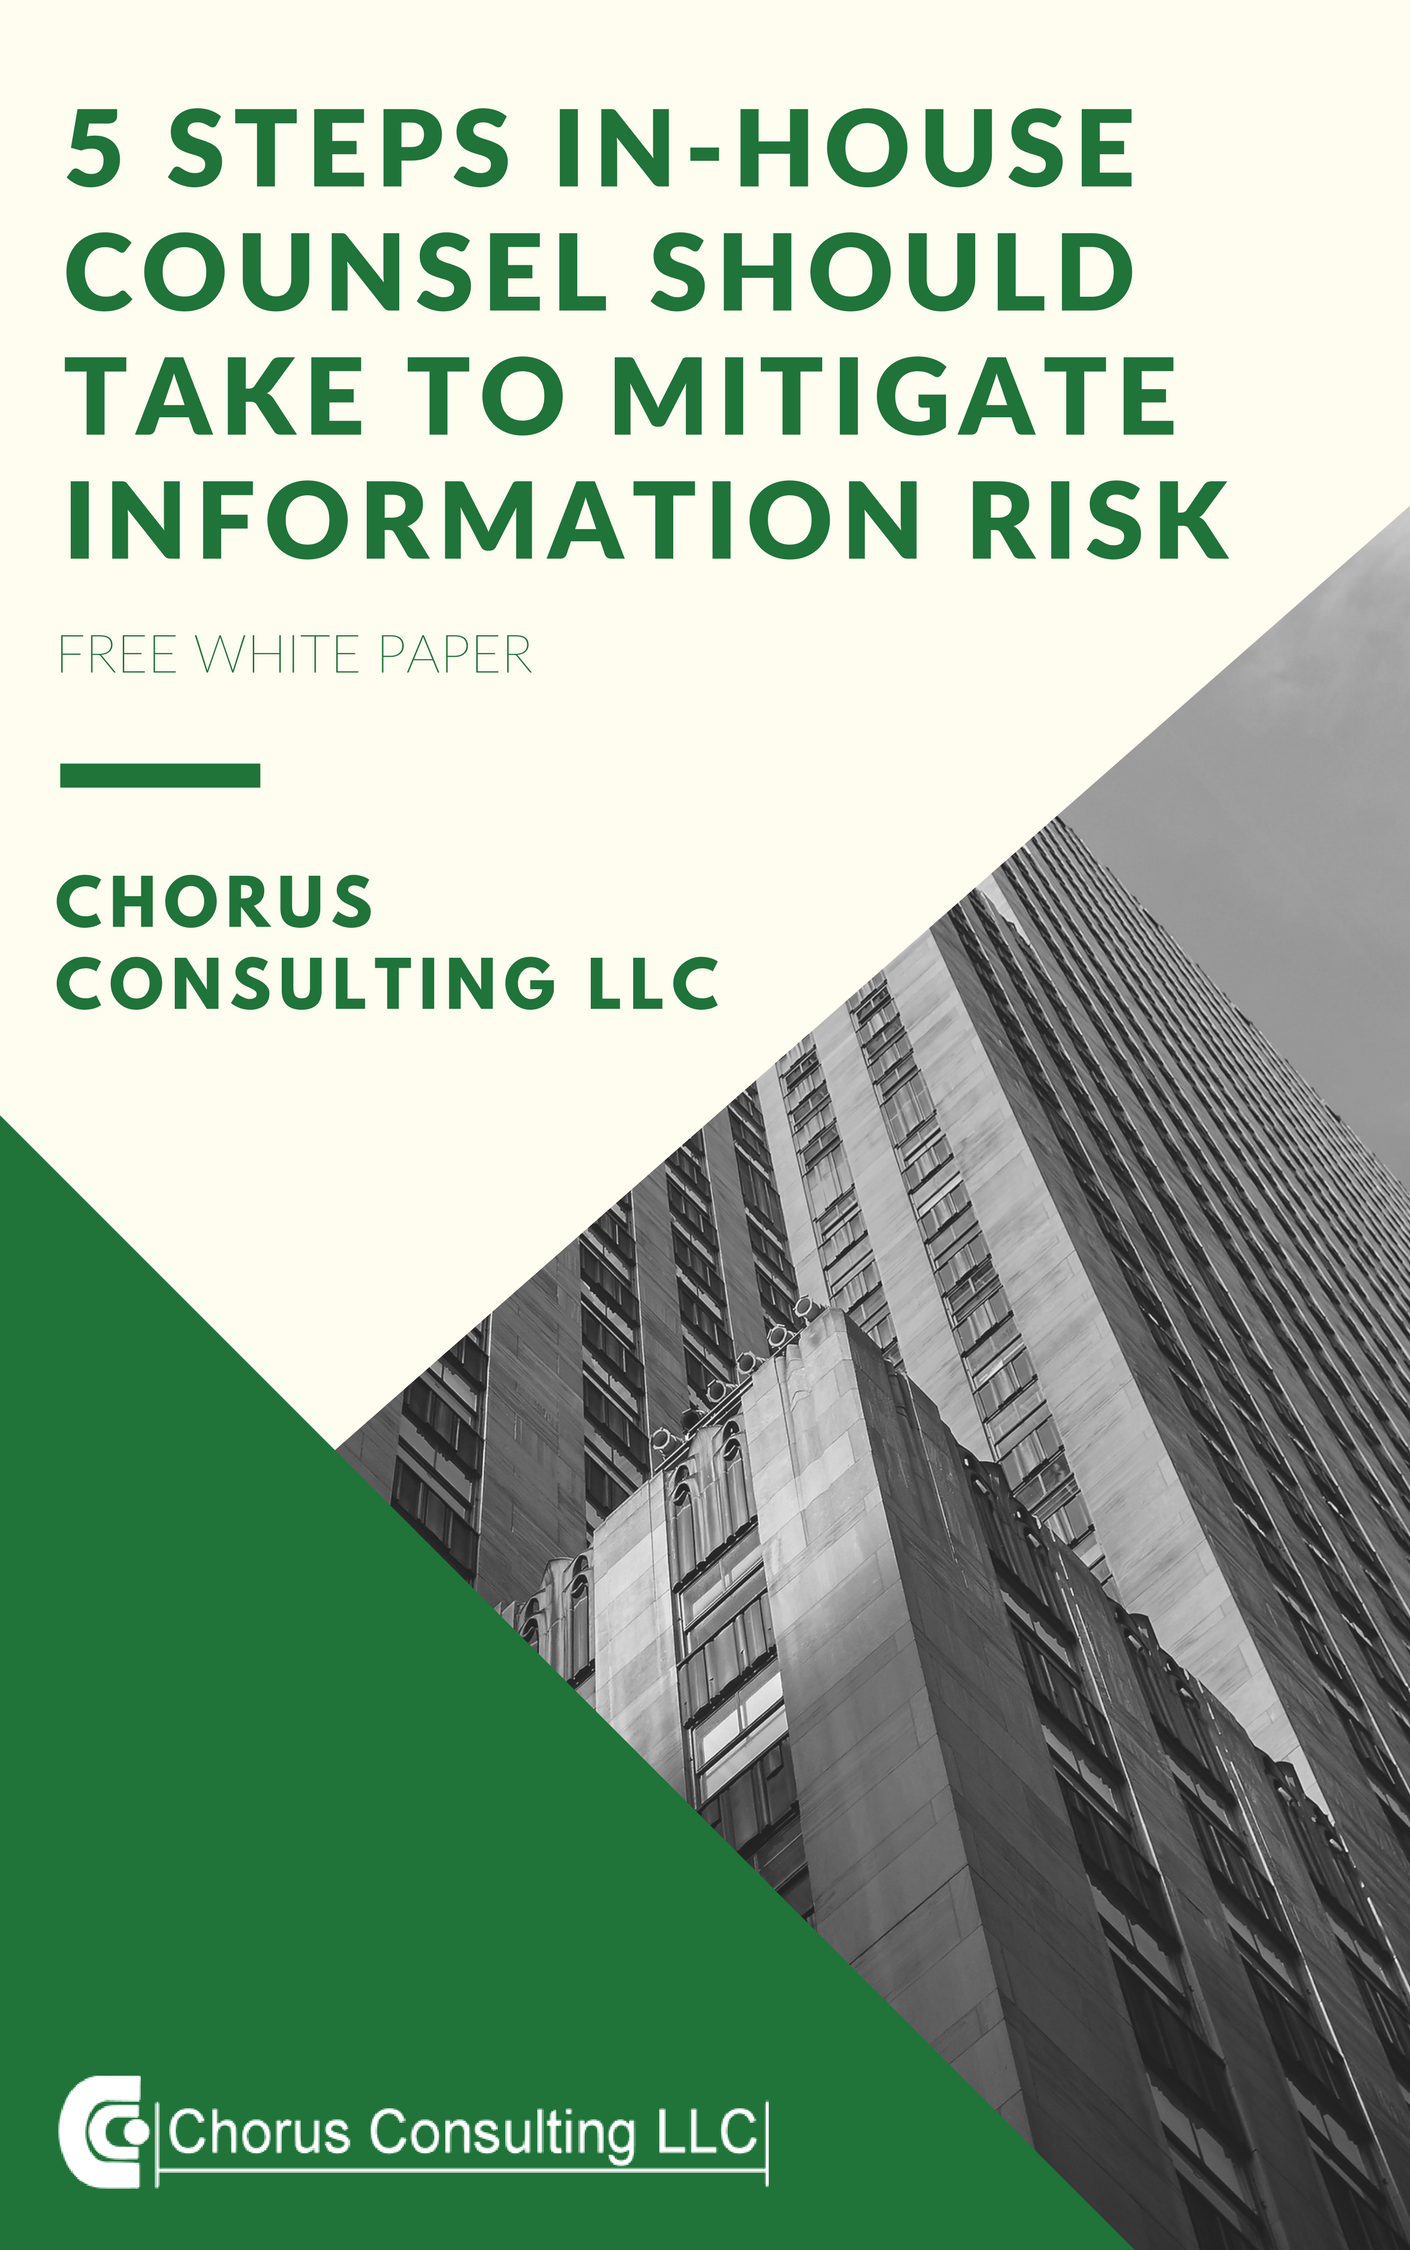 5 STEPS IN-HOUSE COUNSEL SHOULD TAKE TO MITIGATE INFORMATION RISK